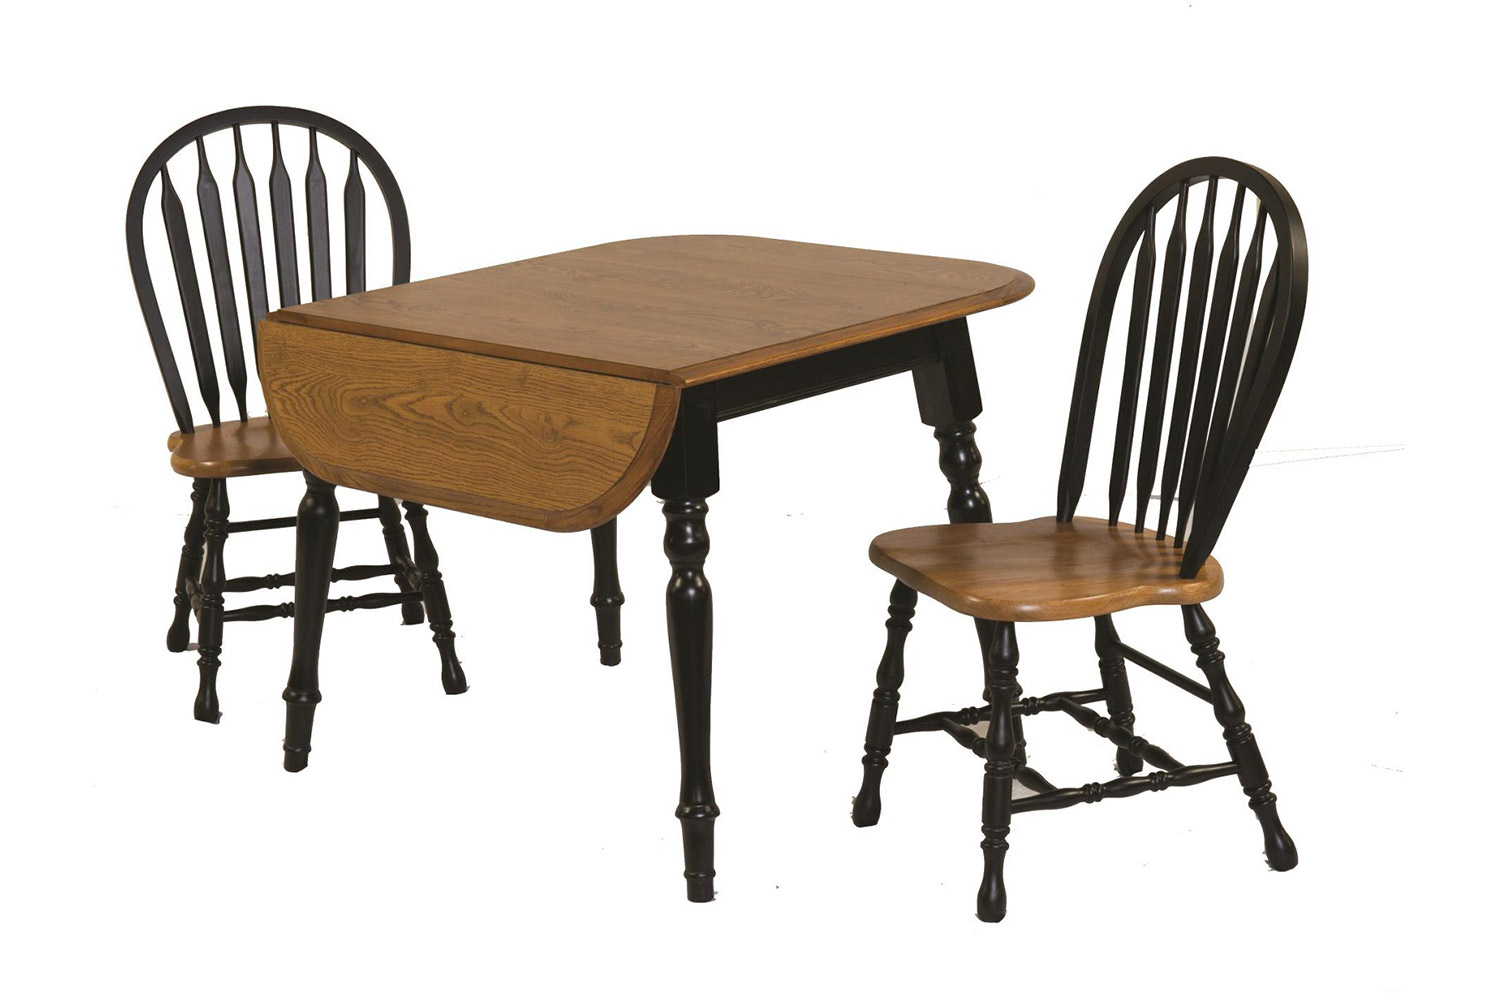 Chelsea Home Taylore Table - Harvest/Black